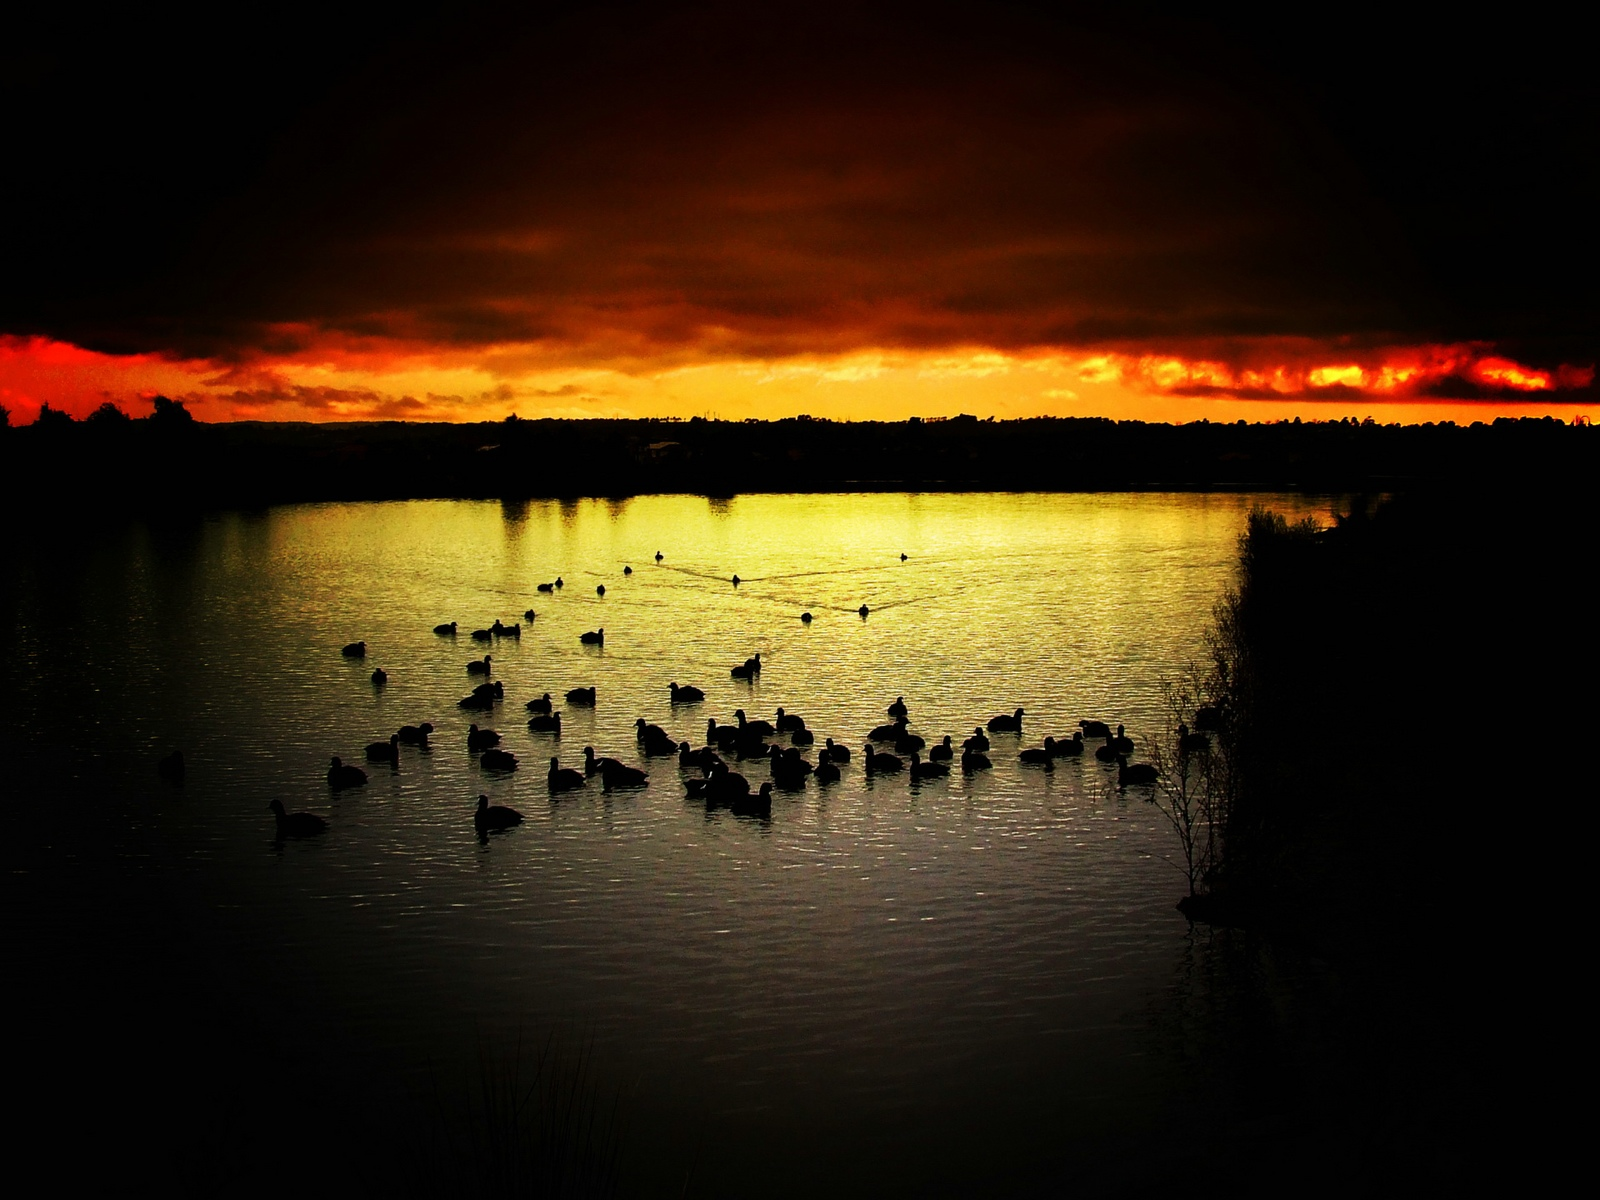 Best hd wallpapers new wallpapers pc wallpapers mobile for Wallpaper mobile home walls